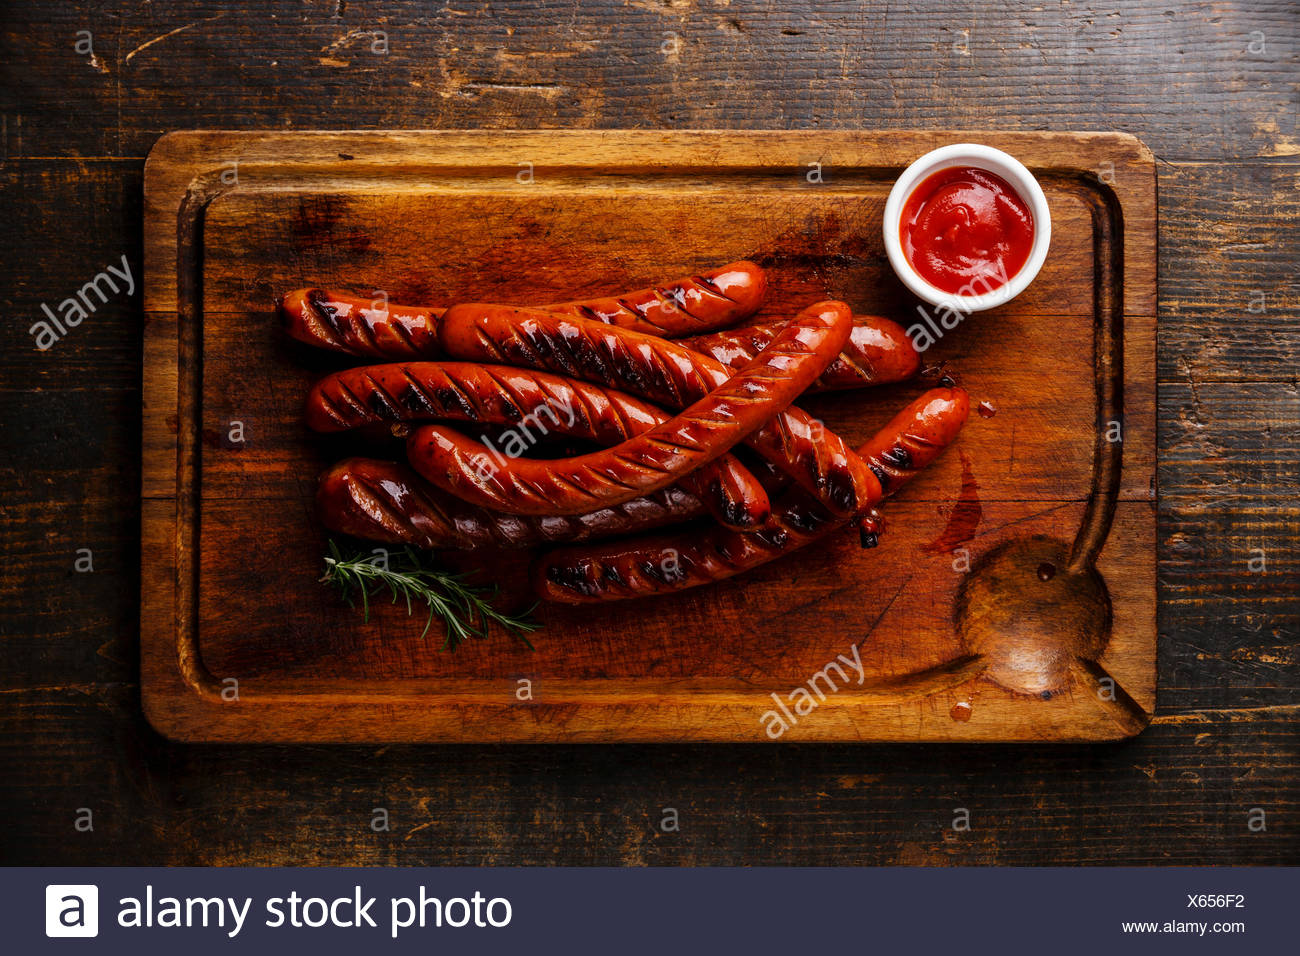 Grilled roasted sausages and ketchup sauce on cutting board on wooden background - Stock Image